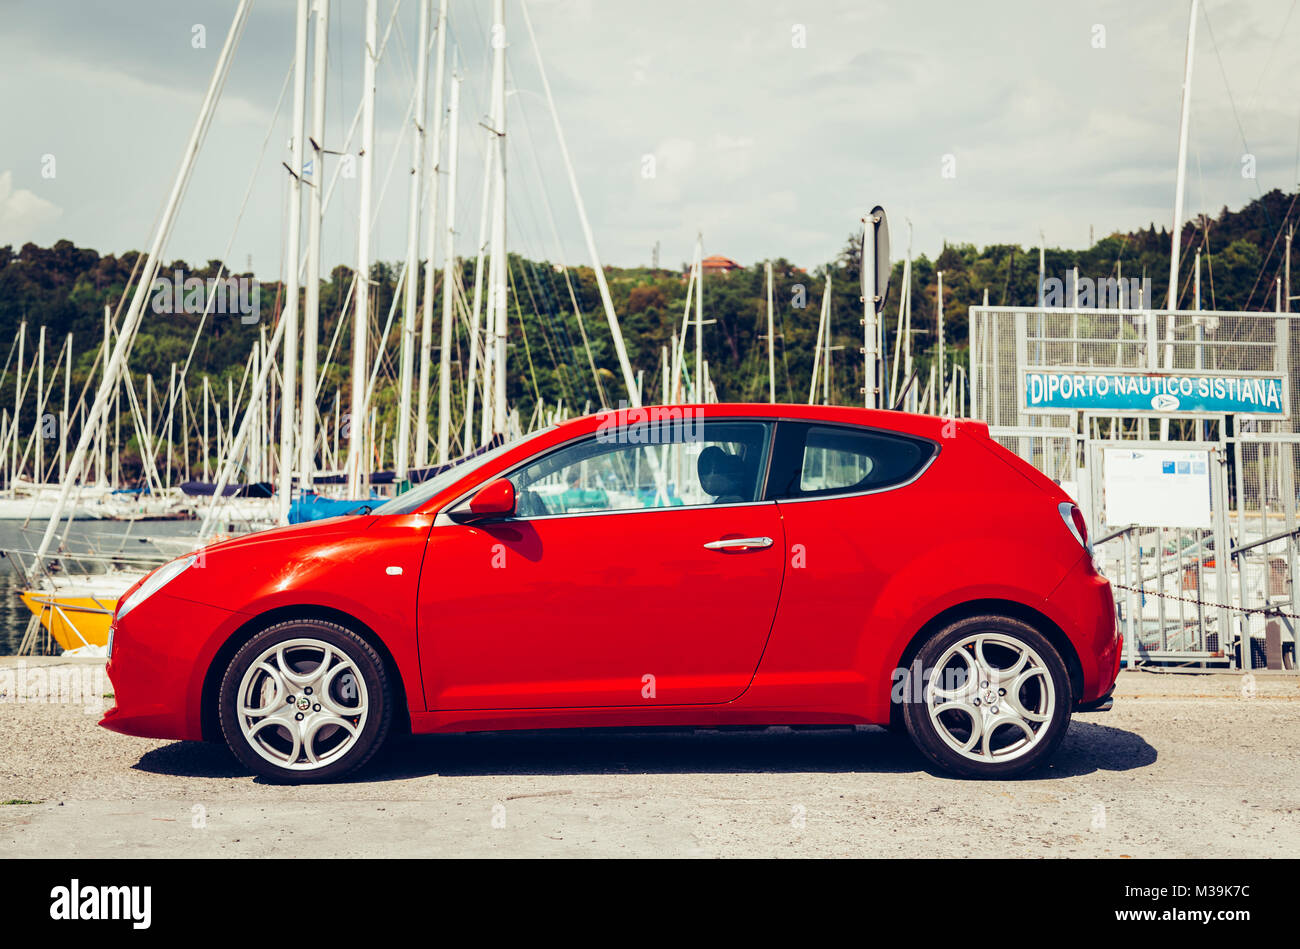 alfa romeo 8c stock photos  u0026 alfa romeo 8c stock images - page 2